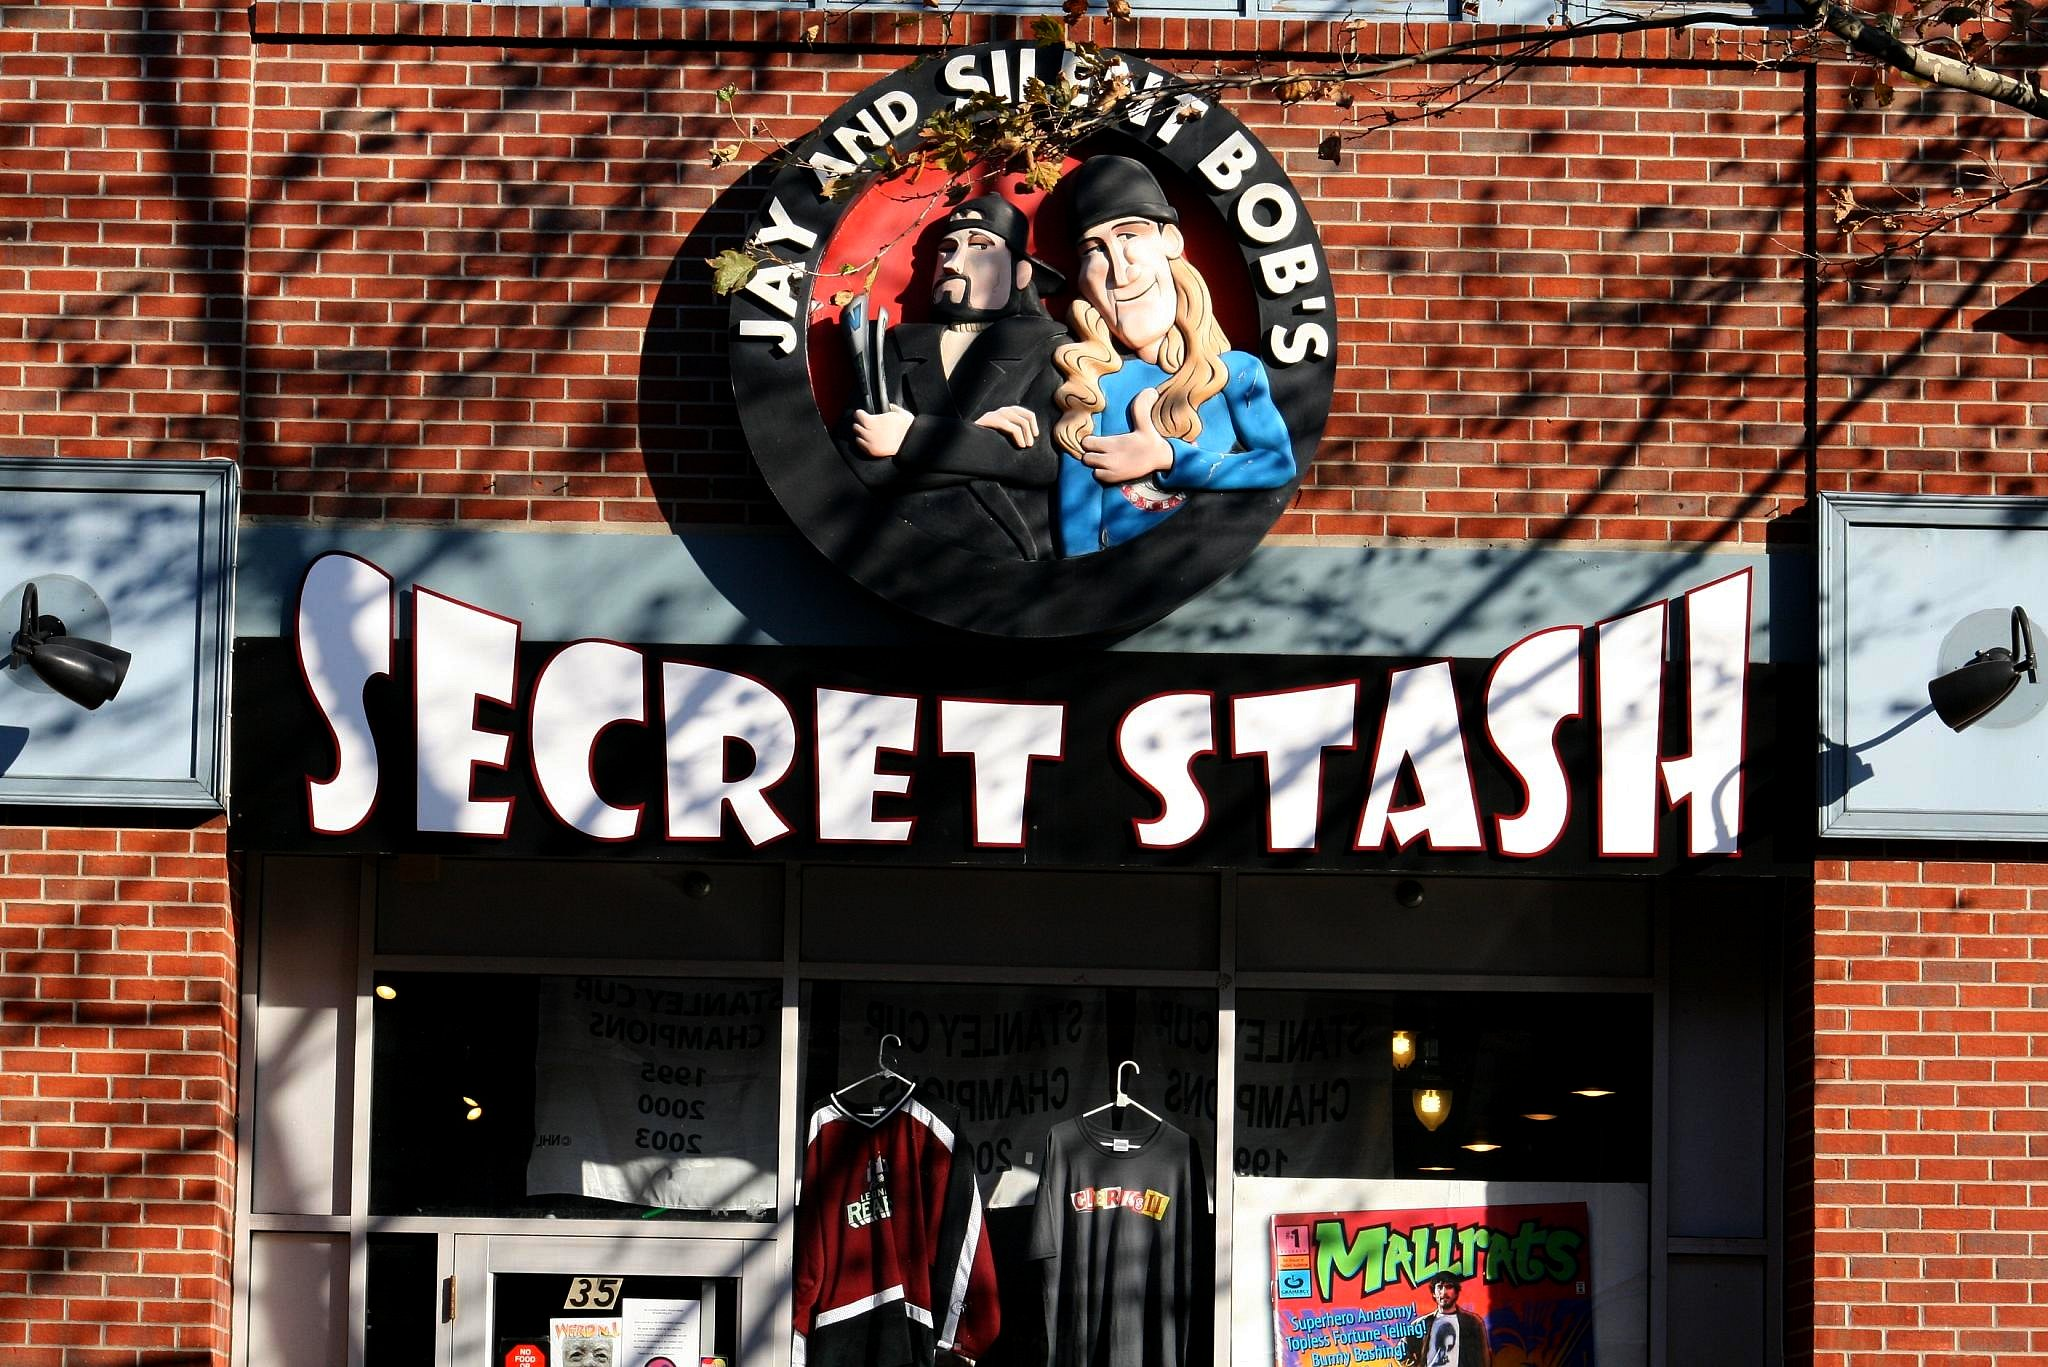 Ming Chen Comic Book Men Jay and Silent Bob's Secret Stash